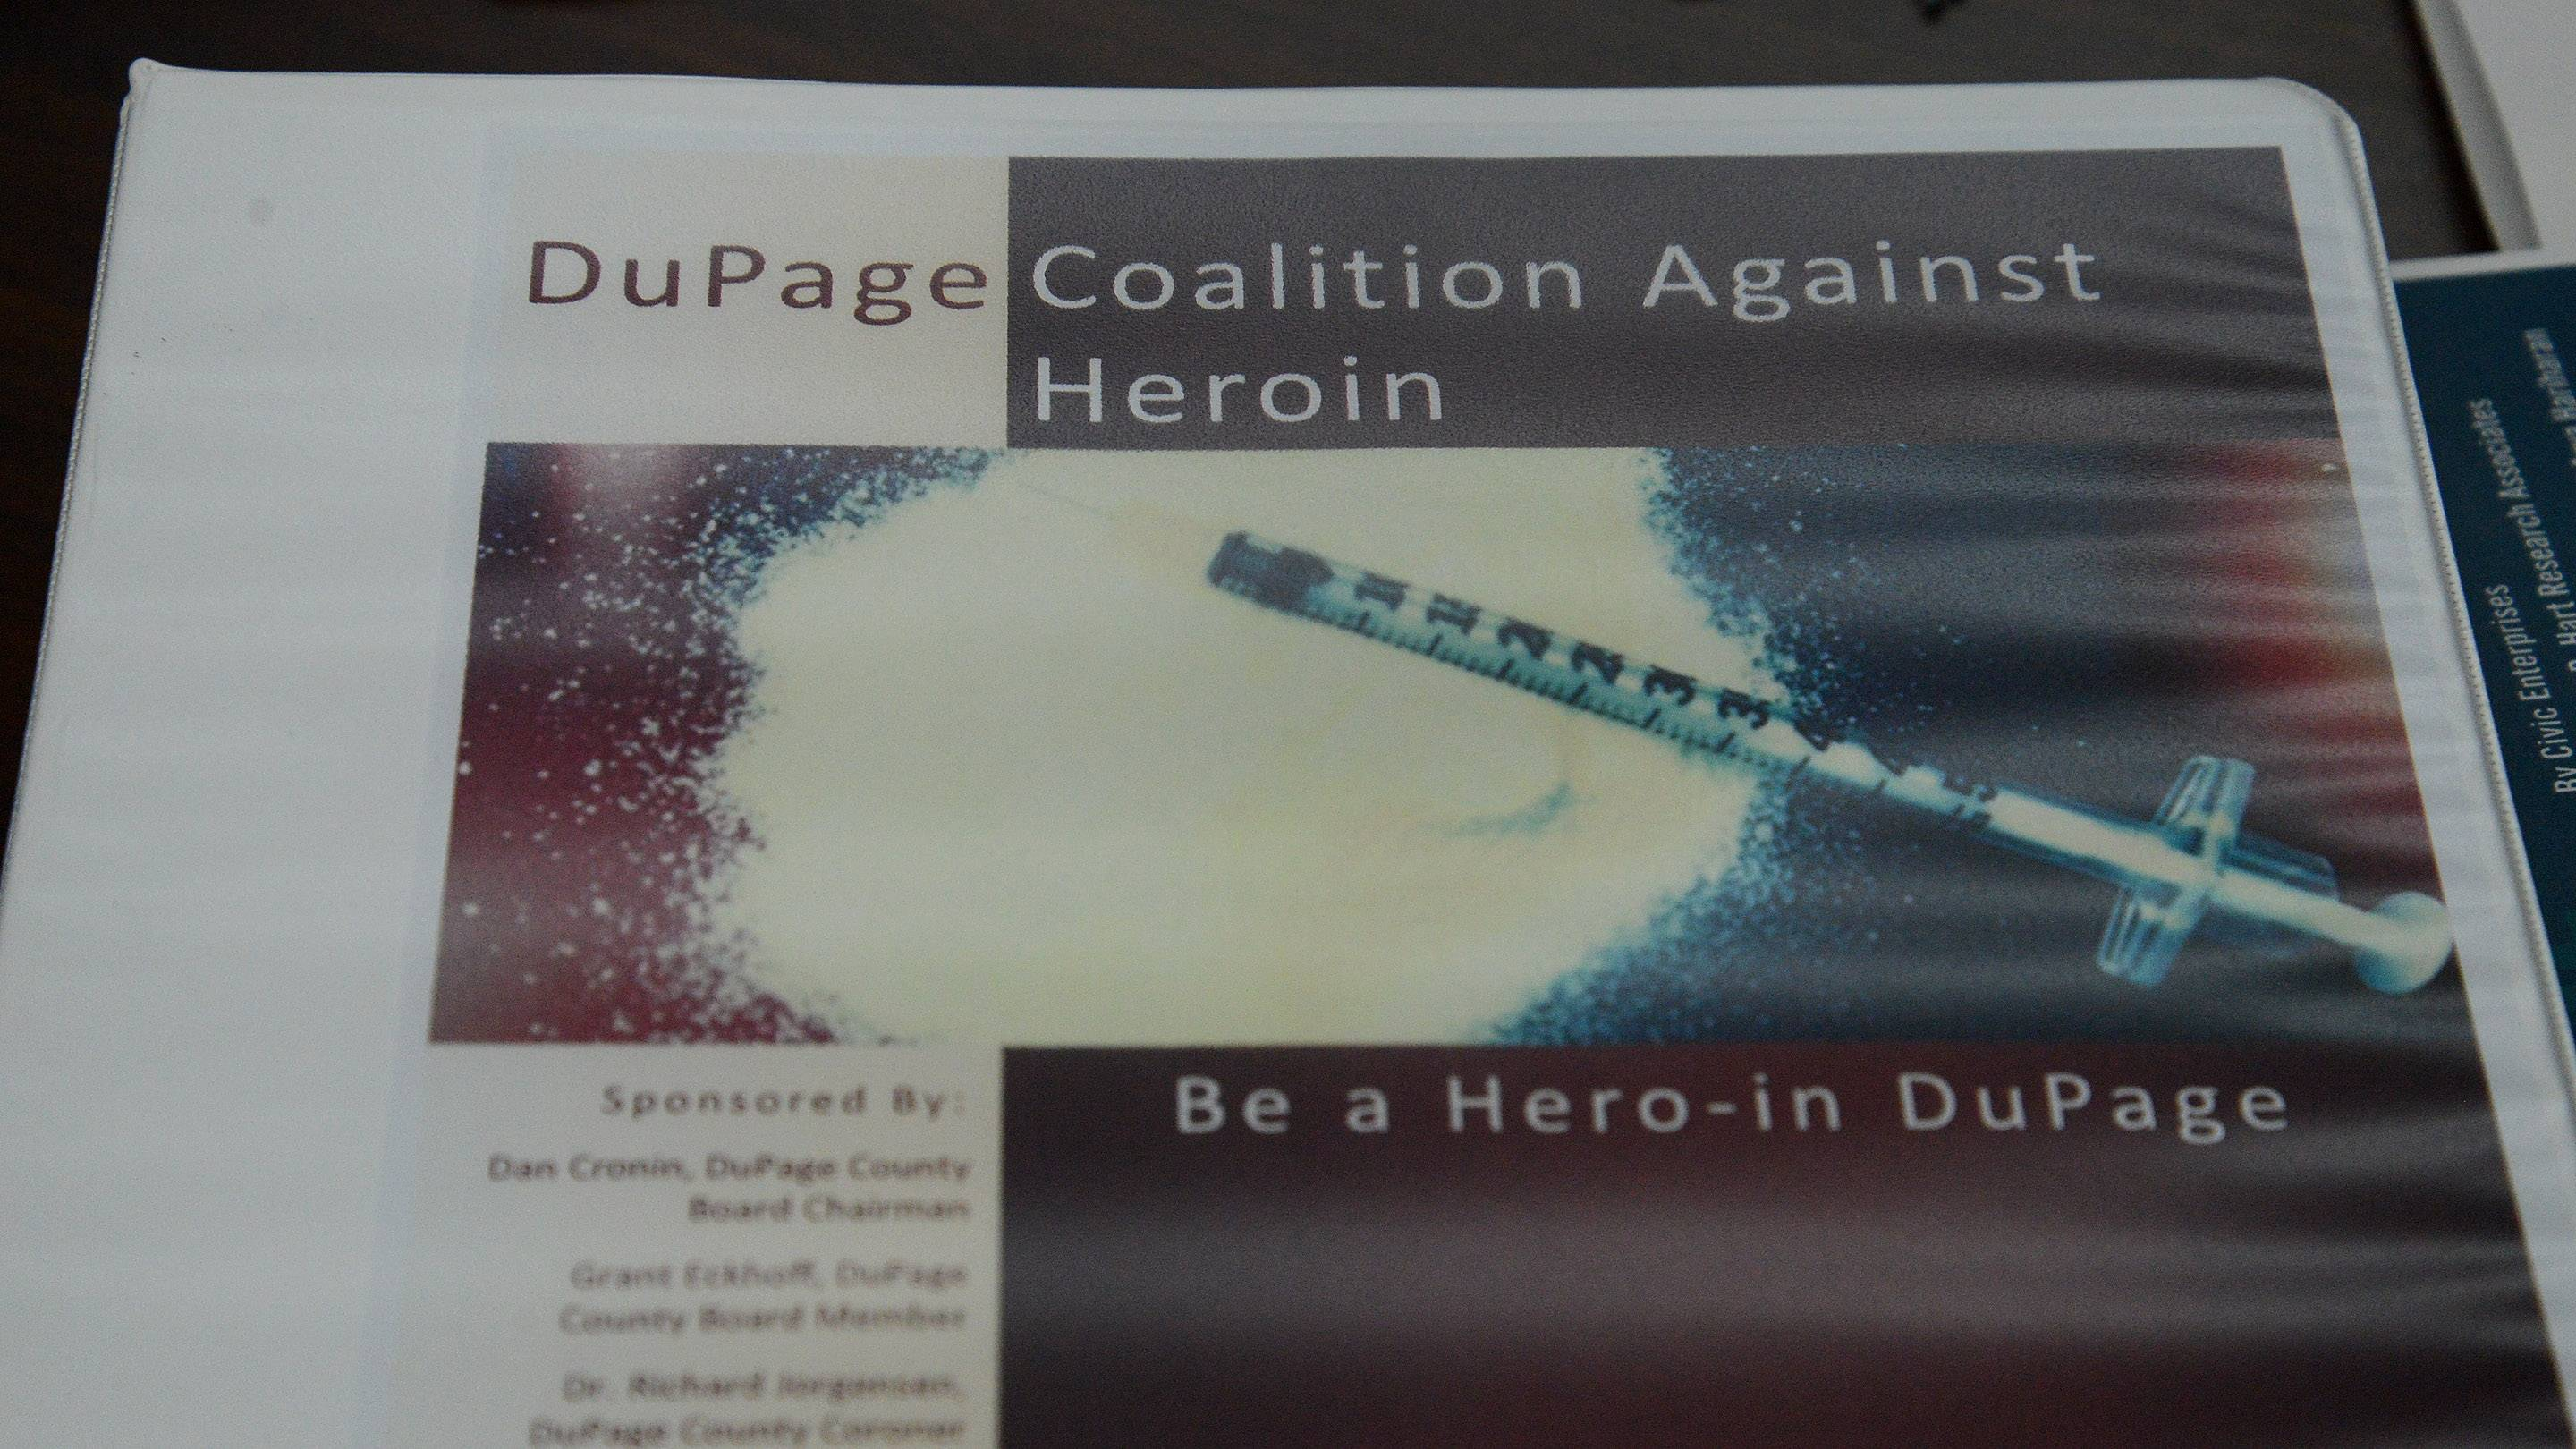 Every school in DuPage County received this binder, which contains pages of information about heroin that could be printed out and distributed to students or parents.